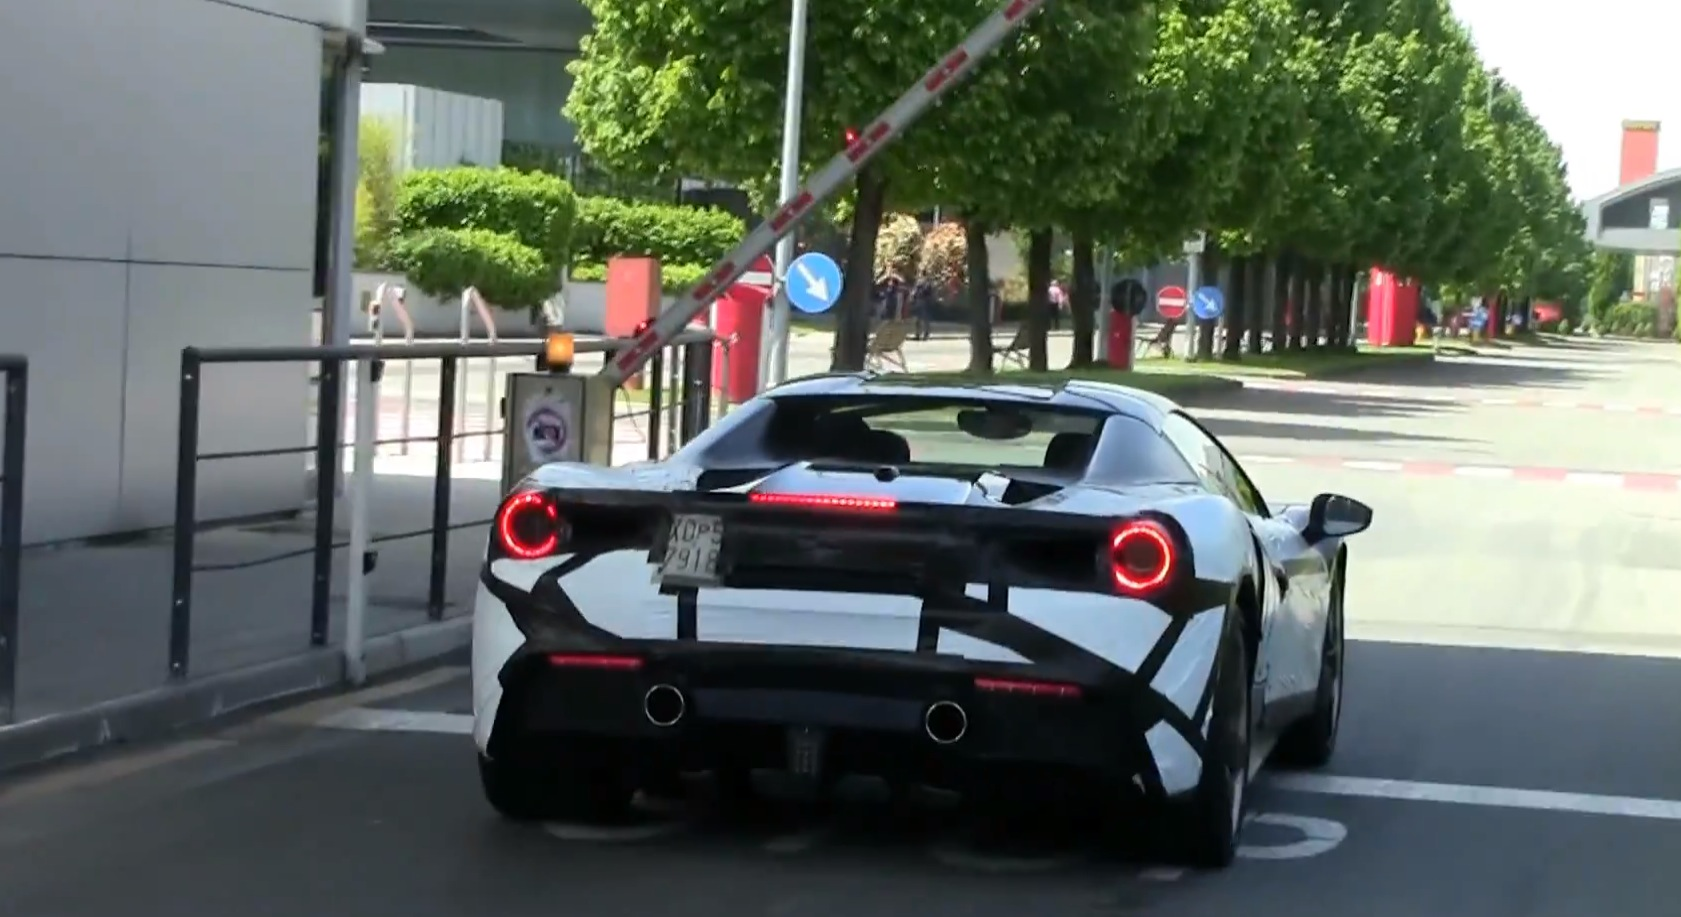 Ferrari 488 Spider 488 Gts Spied For The Fist Time Twin Turbo V8 Sounds Amazing Autoevolution